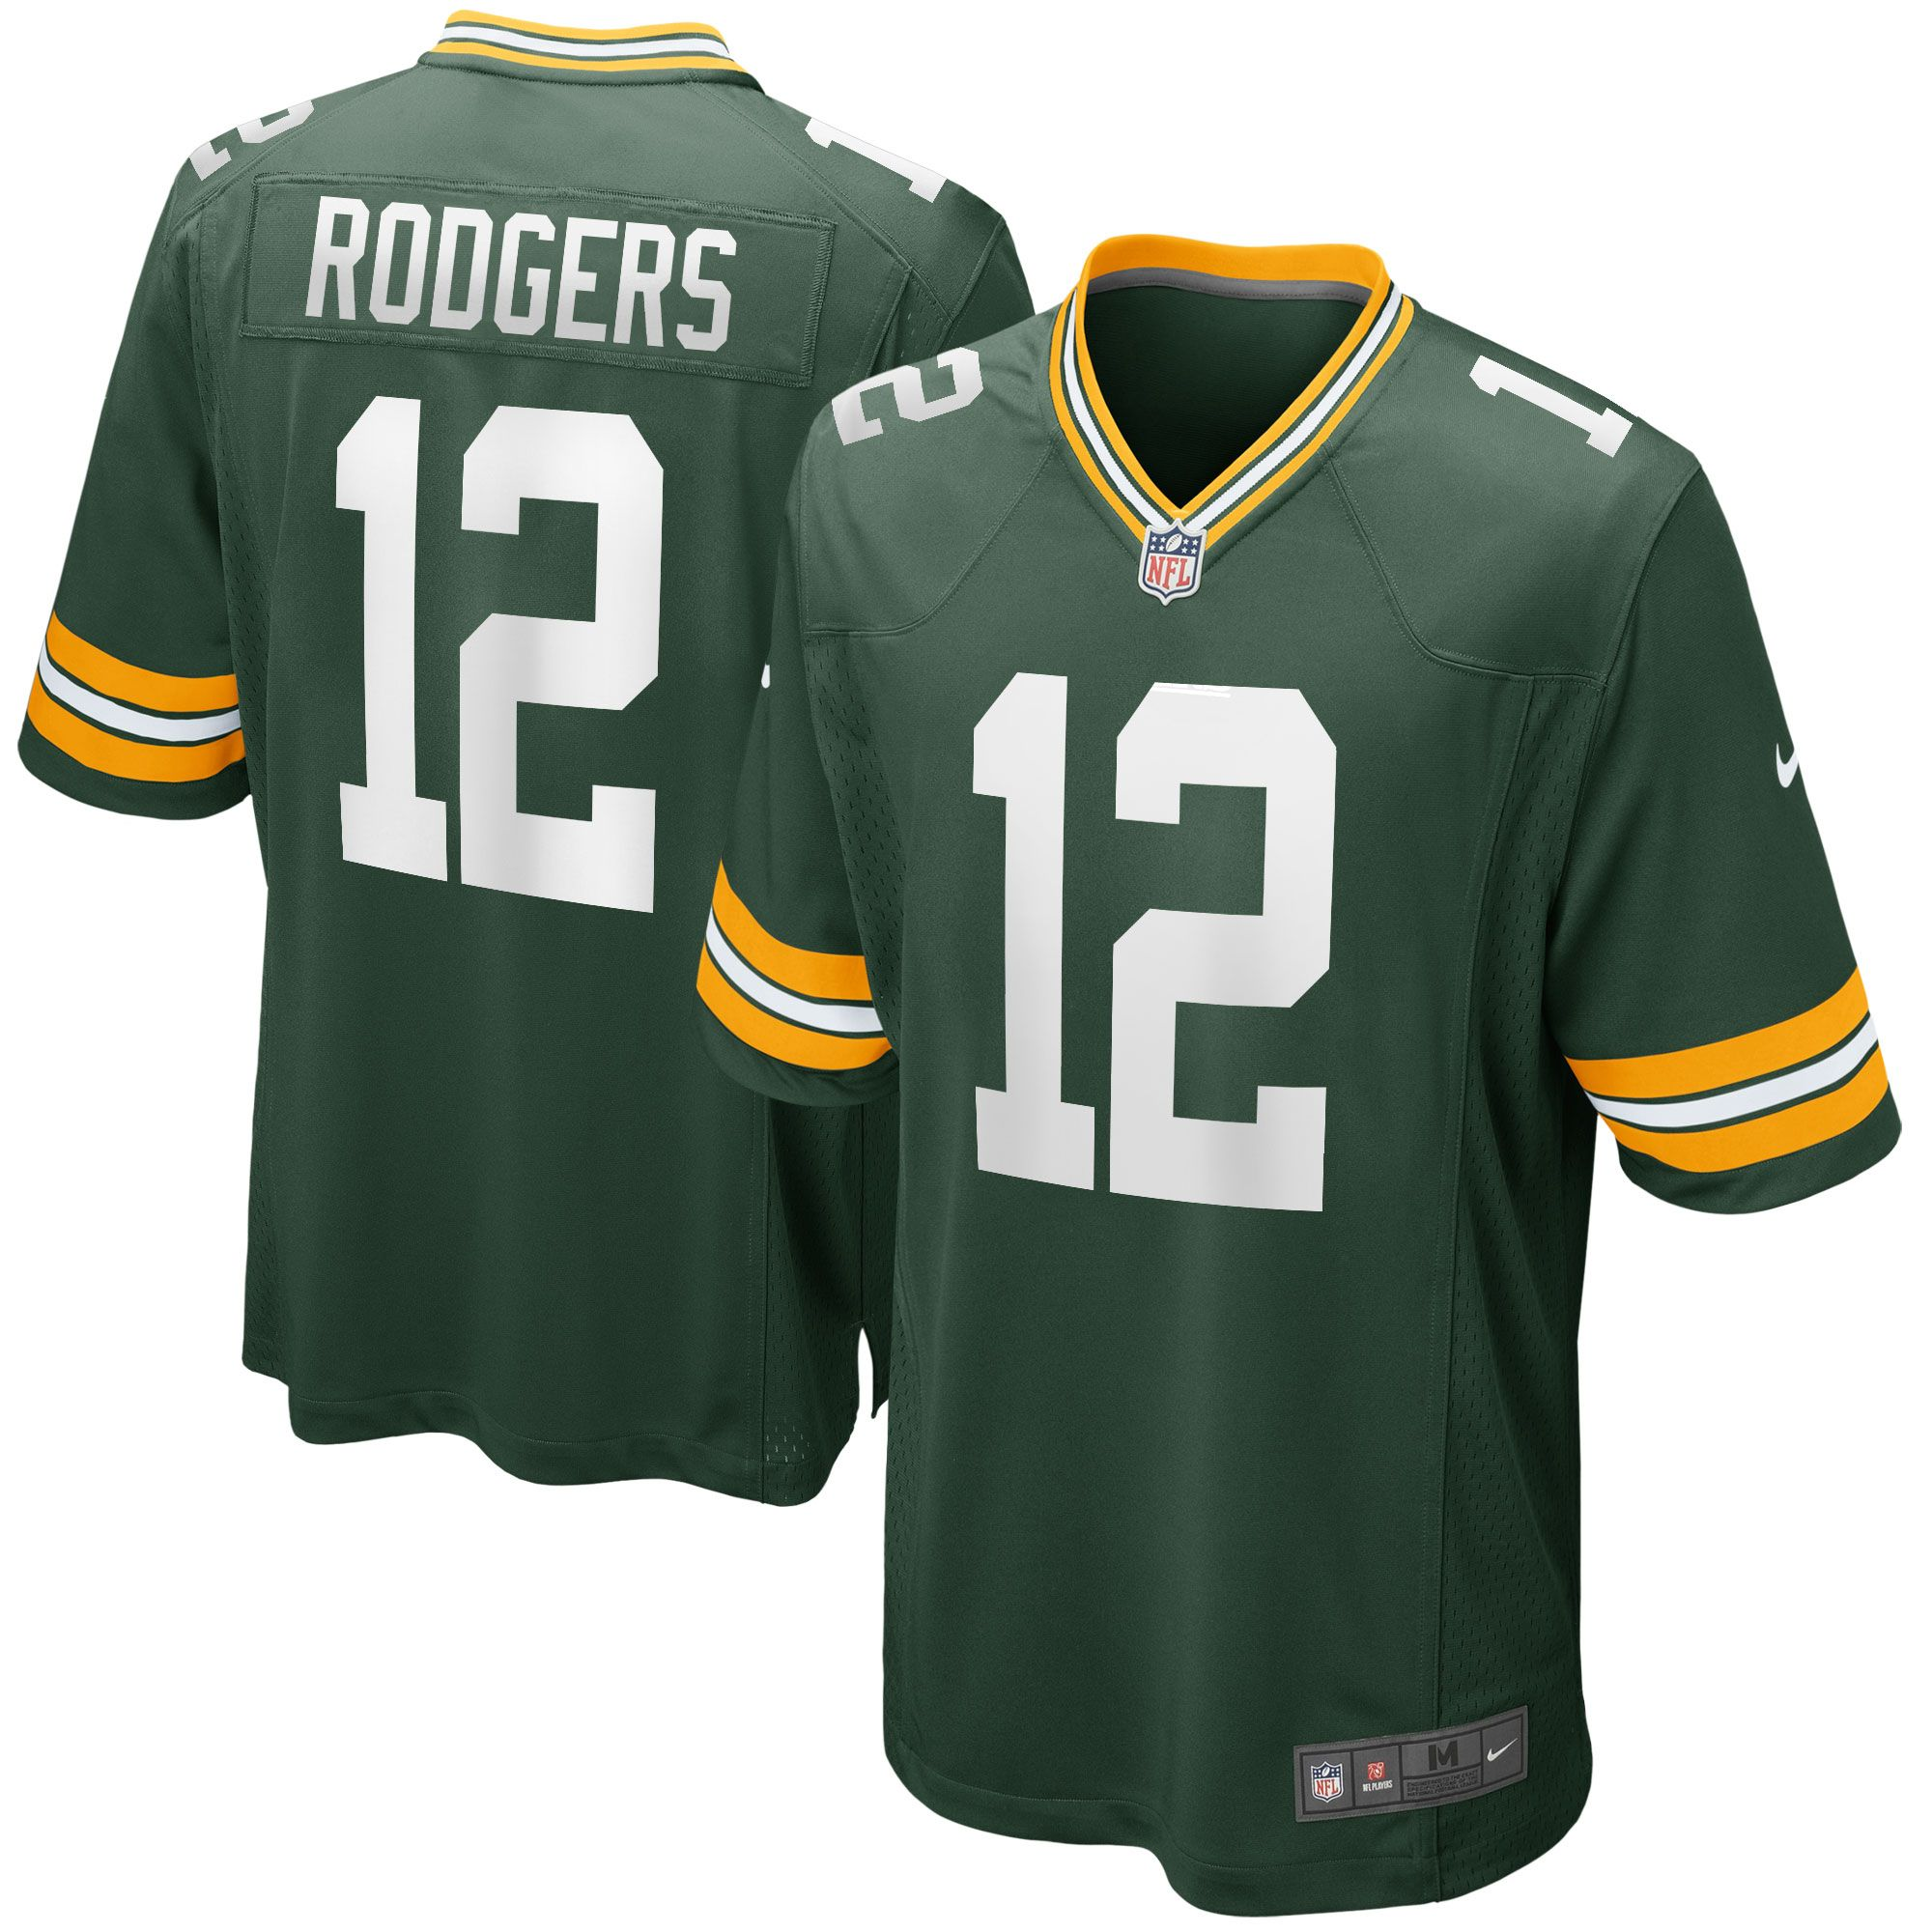 Aaron Rodgers Green Bay Packers Nike Game Player Jersey Green Savingfashioncost Com Green Bay Packers Jerseys Green Bay Packers Rodgers Green Bay